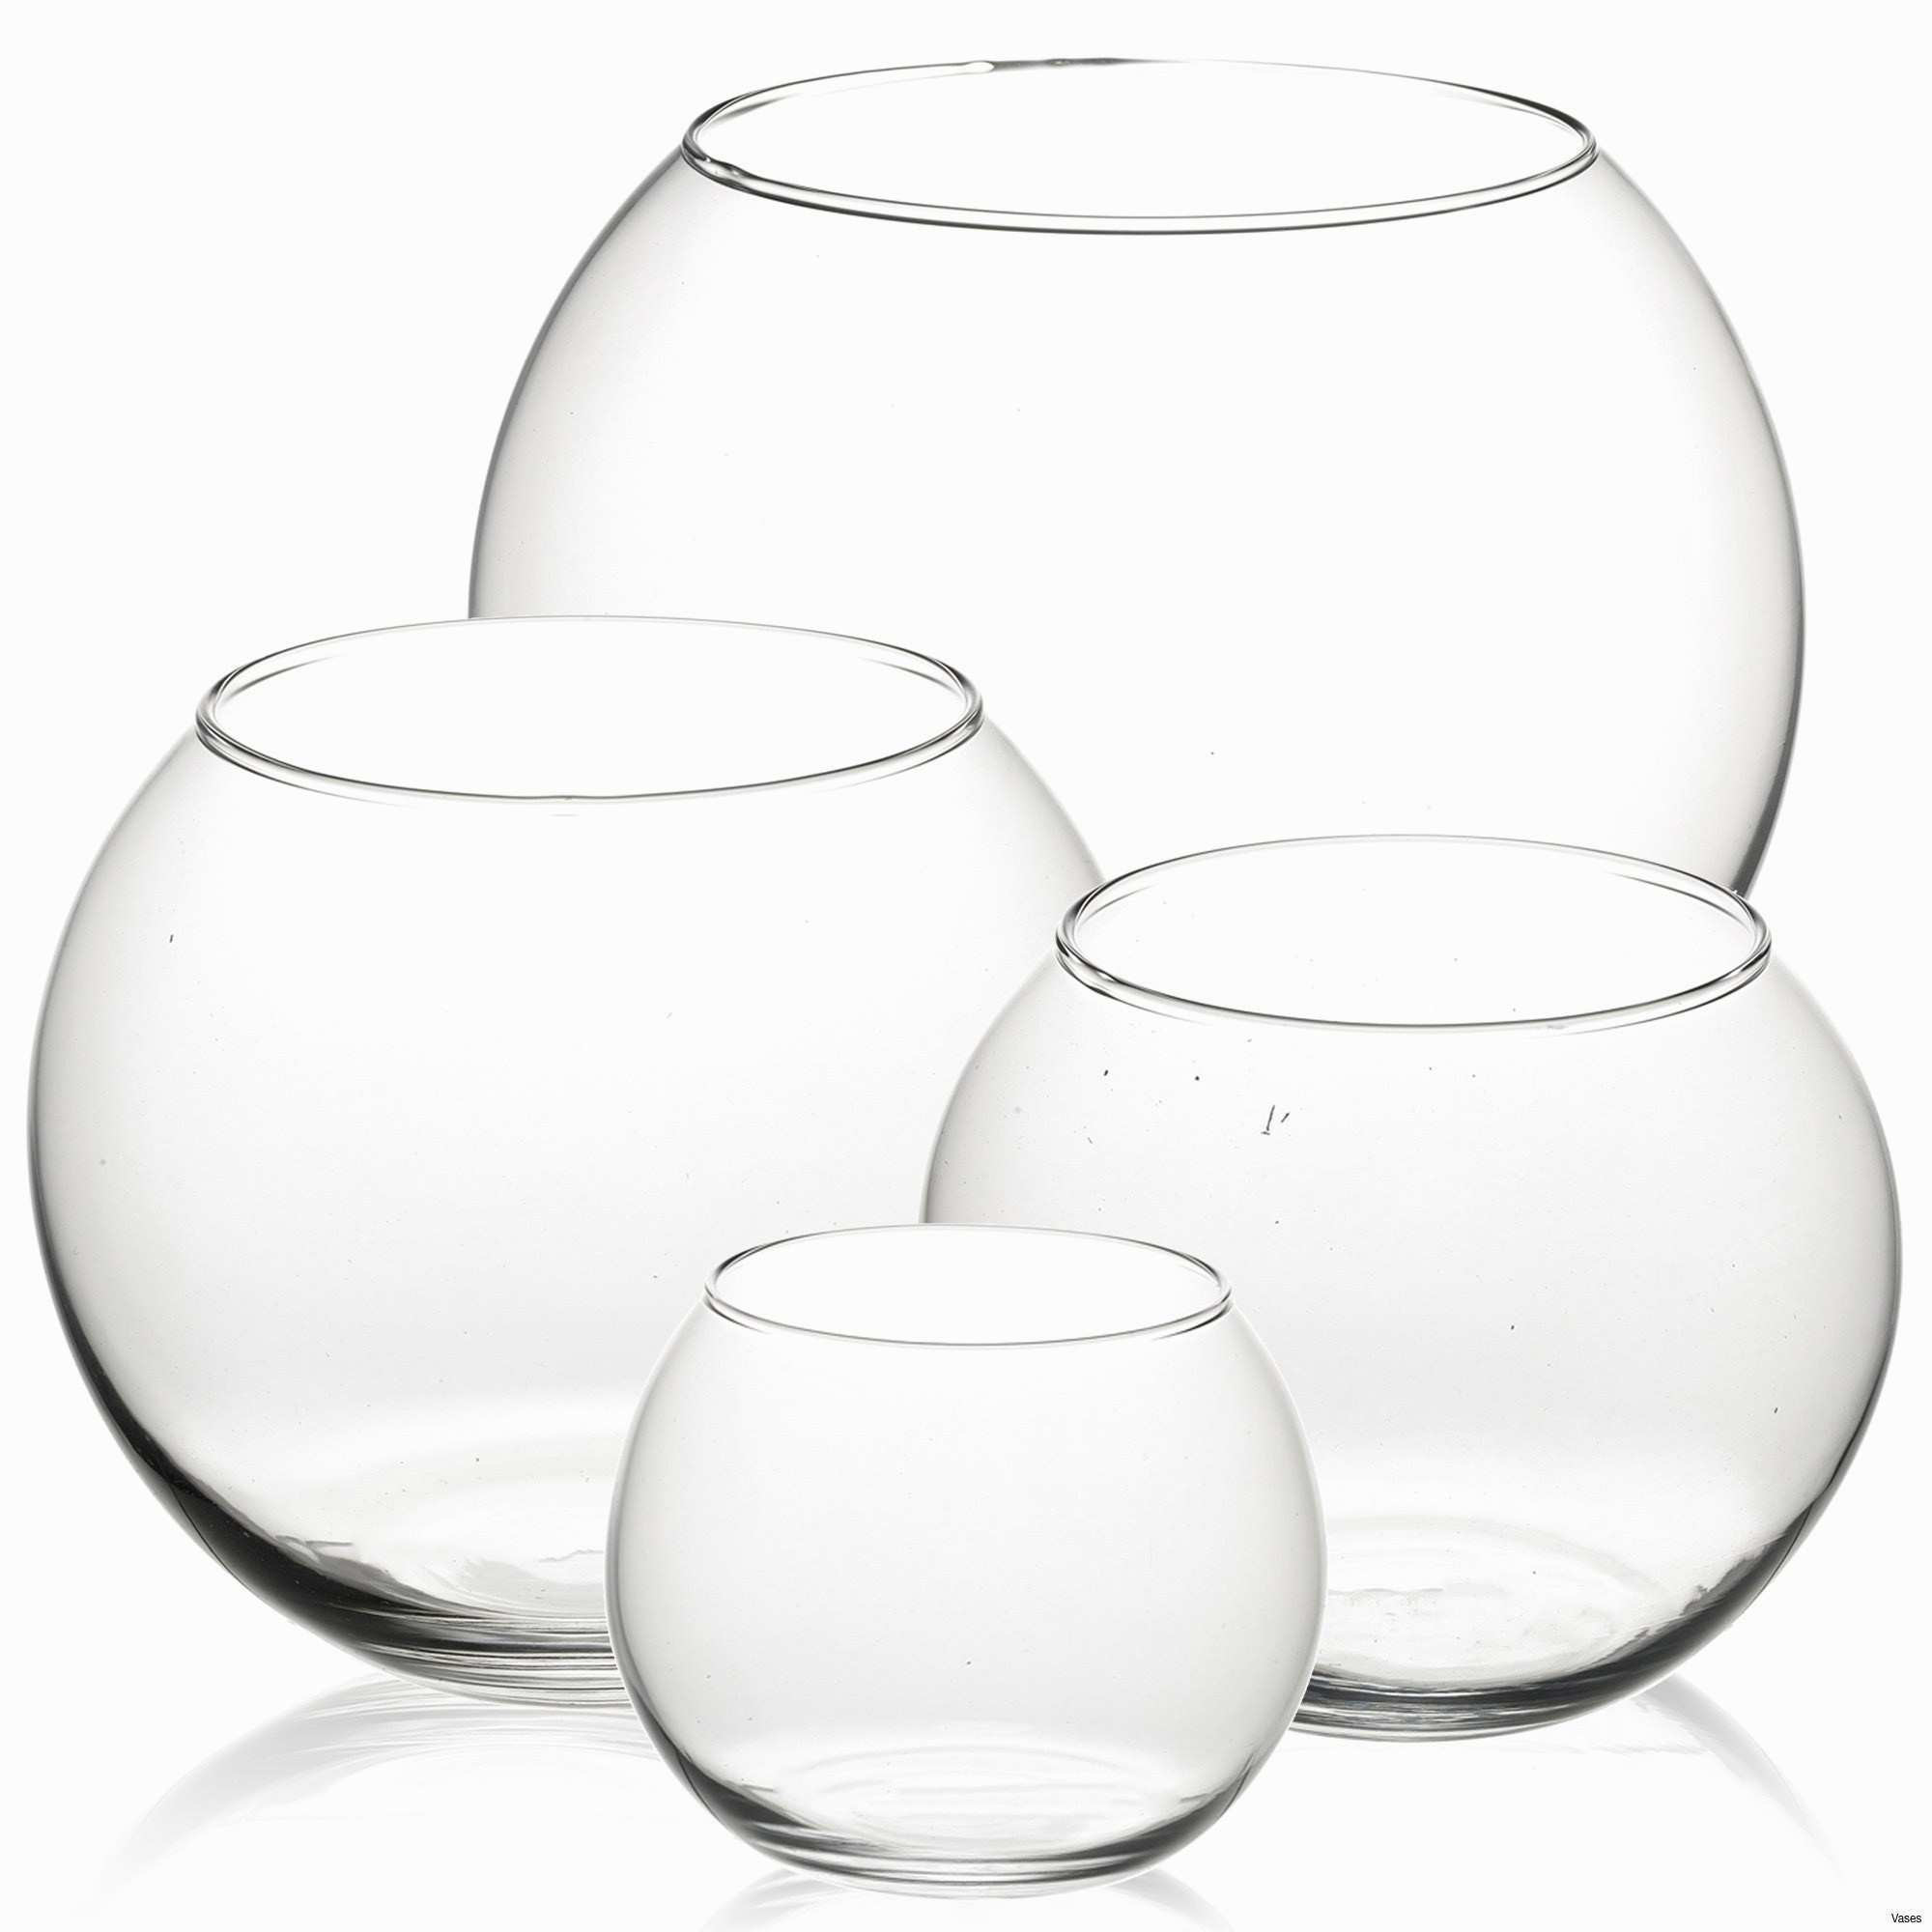 cheap candle vases of 22 wonderful glass pedestal candle holder azcounselrealty com intended for glass pedestal candle holder awesome decorative fillers for glass vases new h vases easter vase i